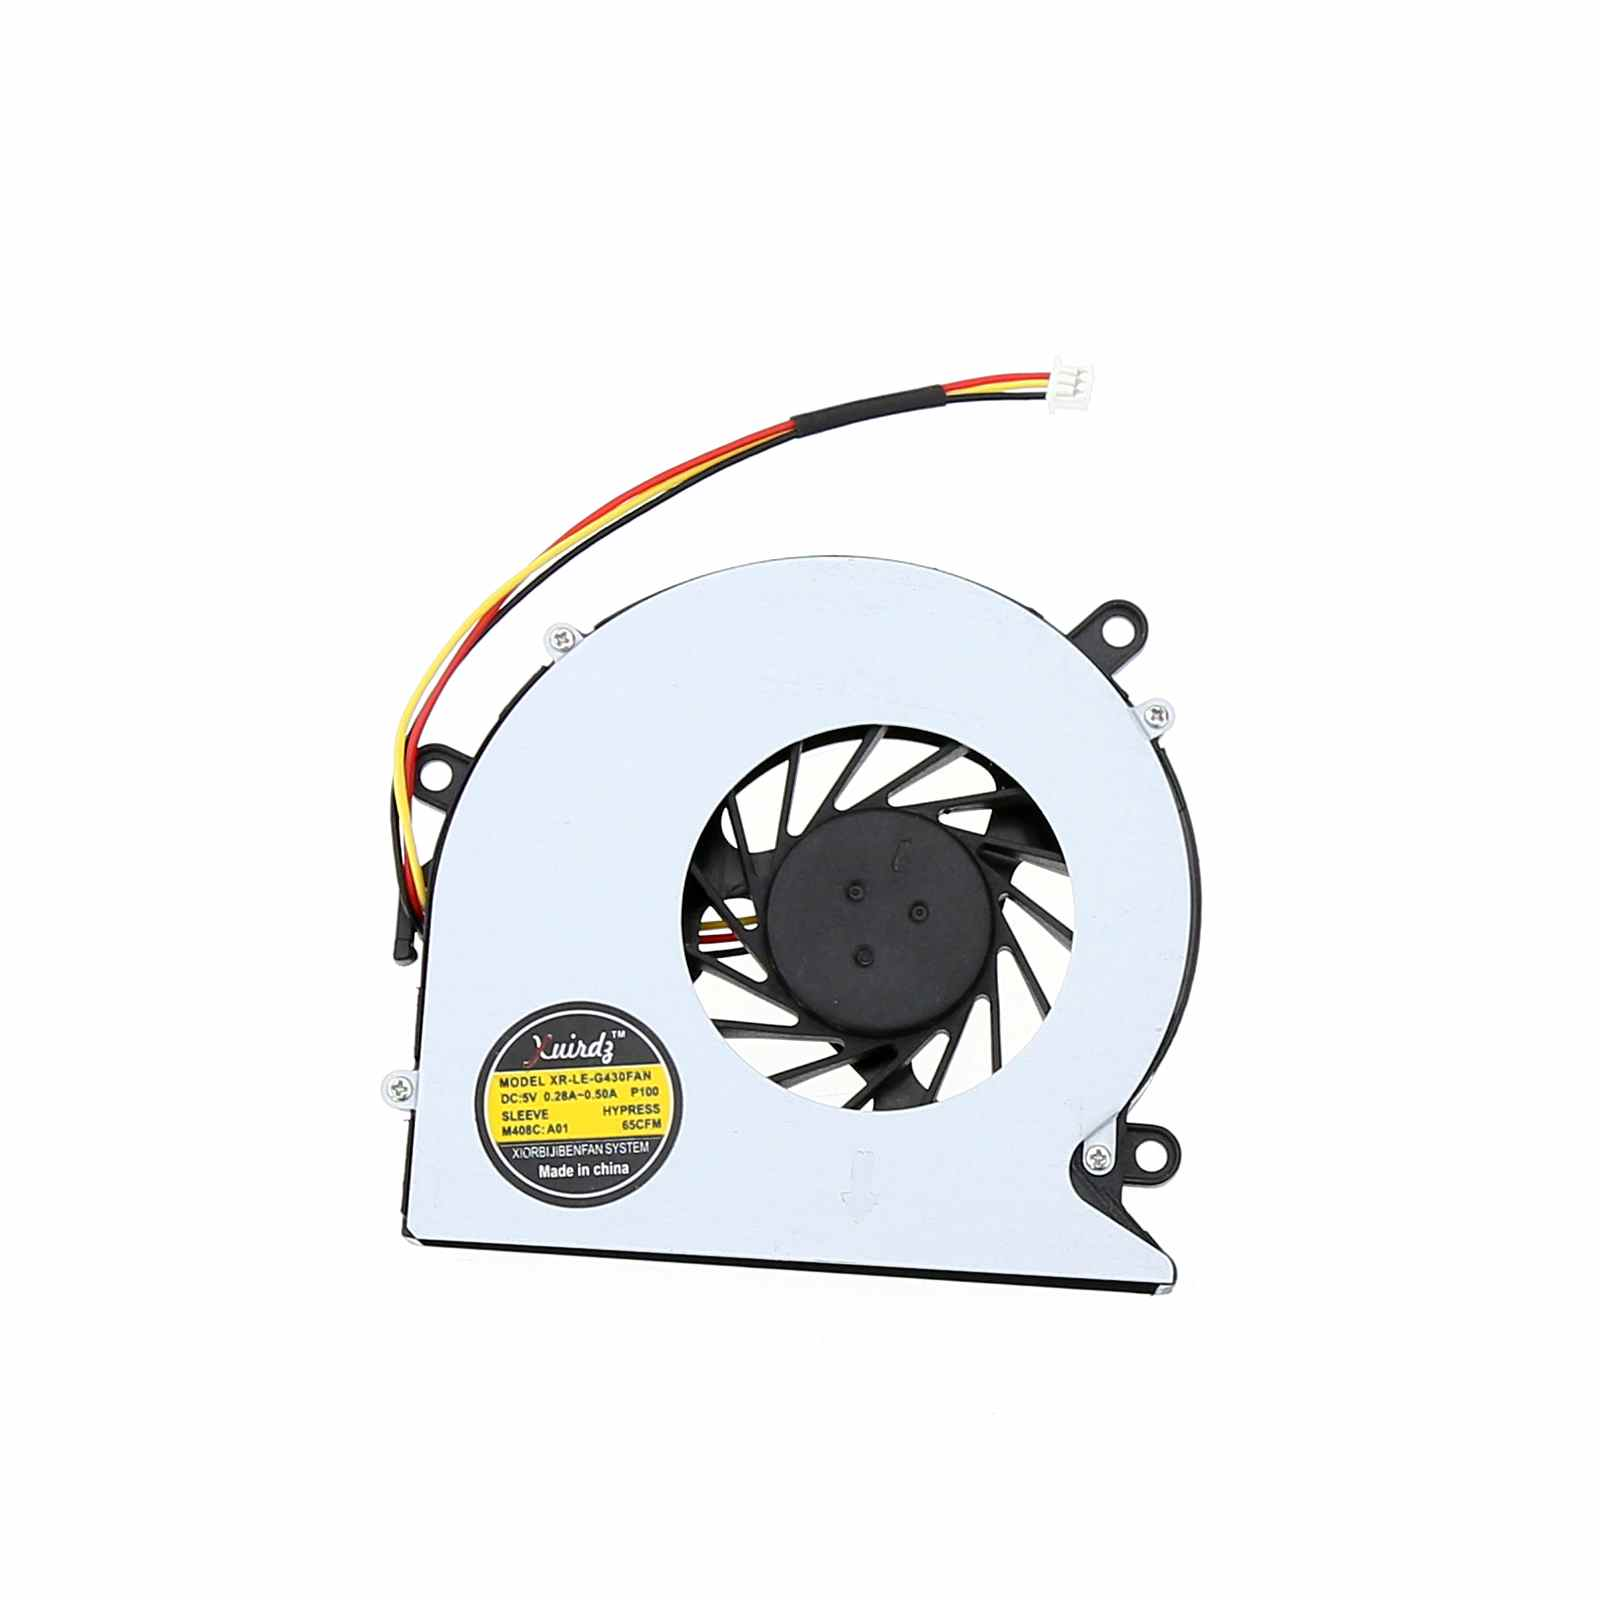 Brand New and original CPU cooling fan for Acer Aspire 5520 5315 5220 5520 5720 7220 7520 7720 laptop fan for acer aspire v3 772g notebook pc heatsink fan fit for gtx850 and gtx760m gpu 100% tested